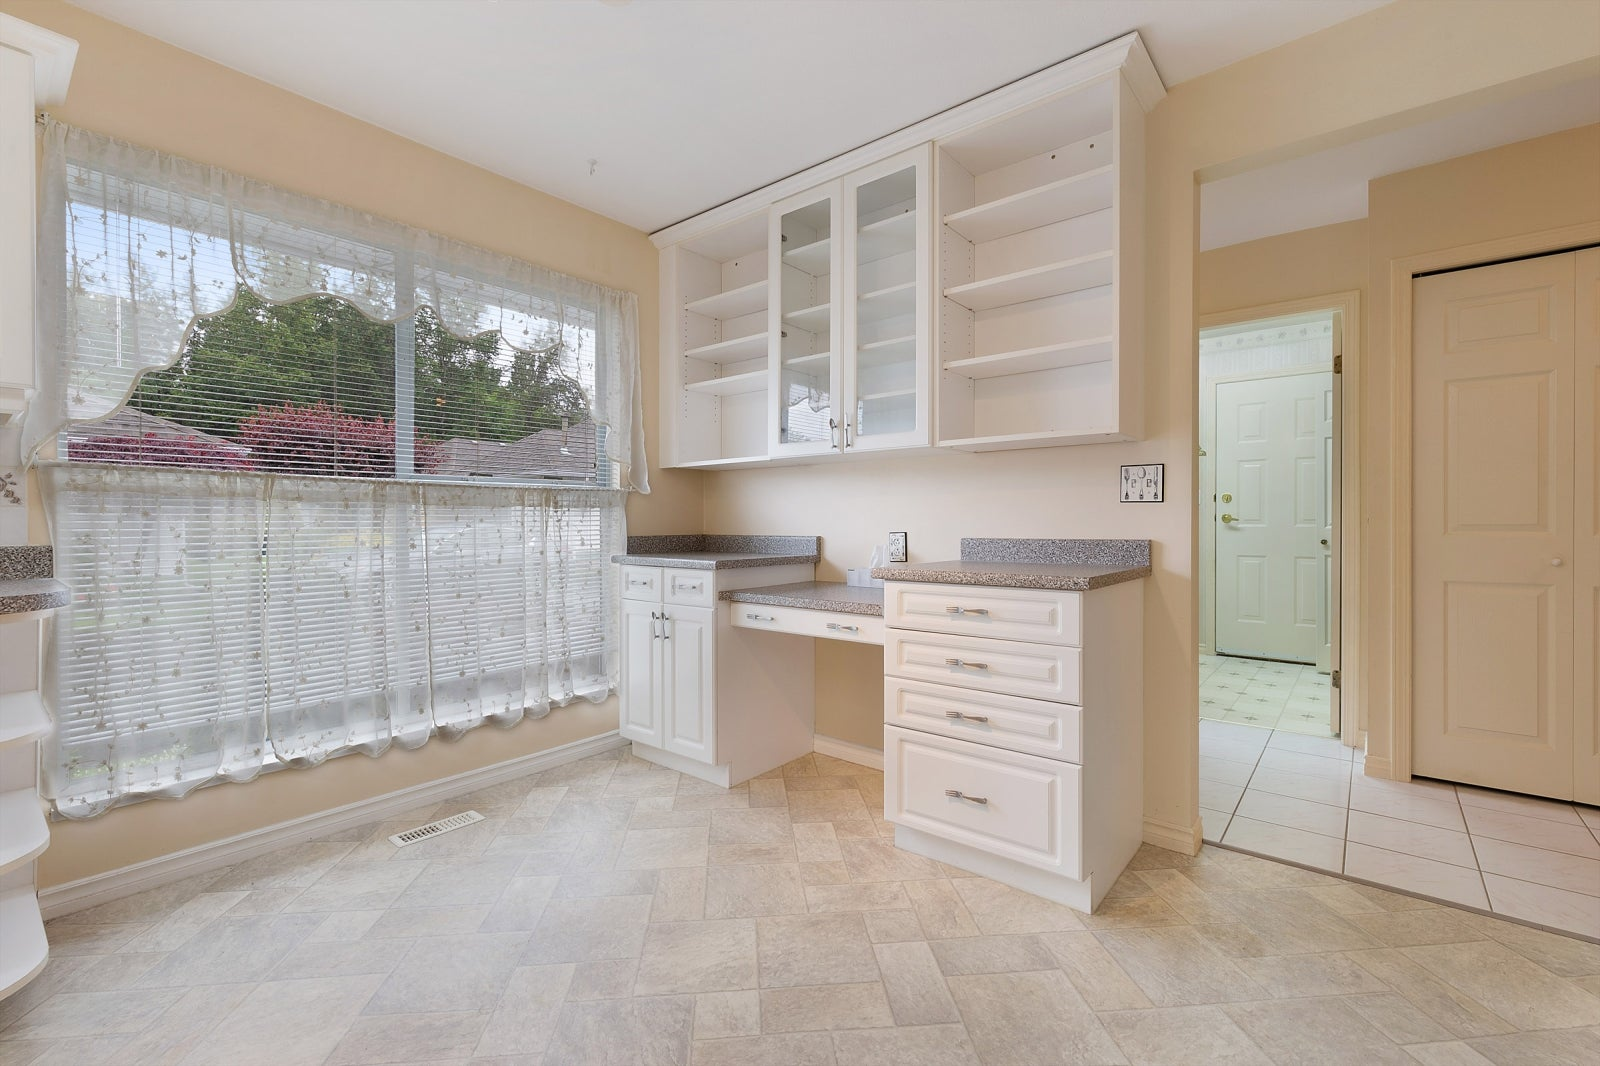 128 10172 141 STREET - Whalley Townhouse for sale, 2 Bedrooms (R2459213) #6